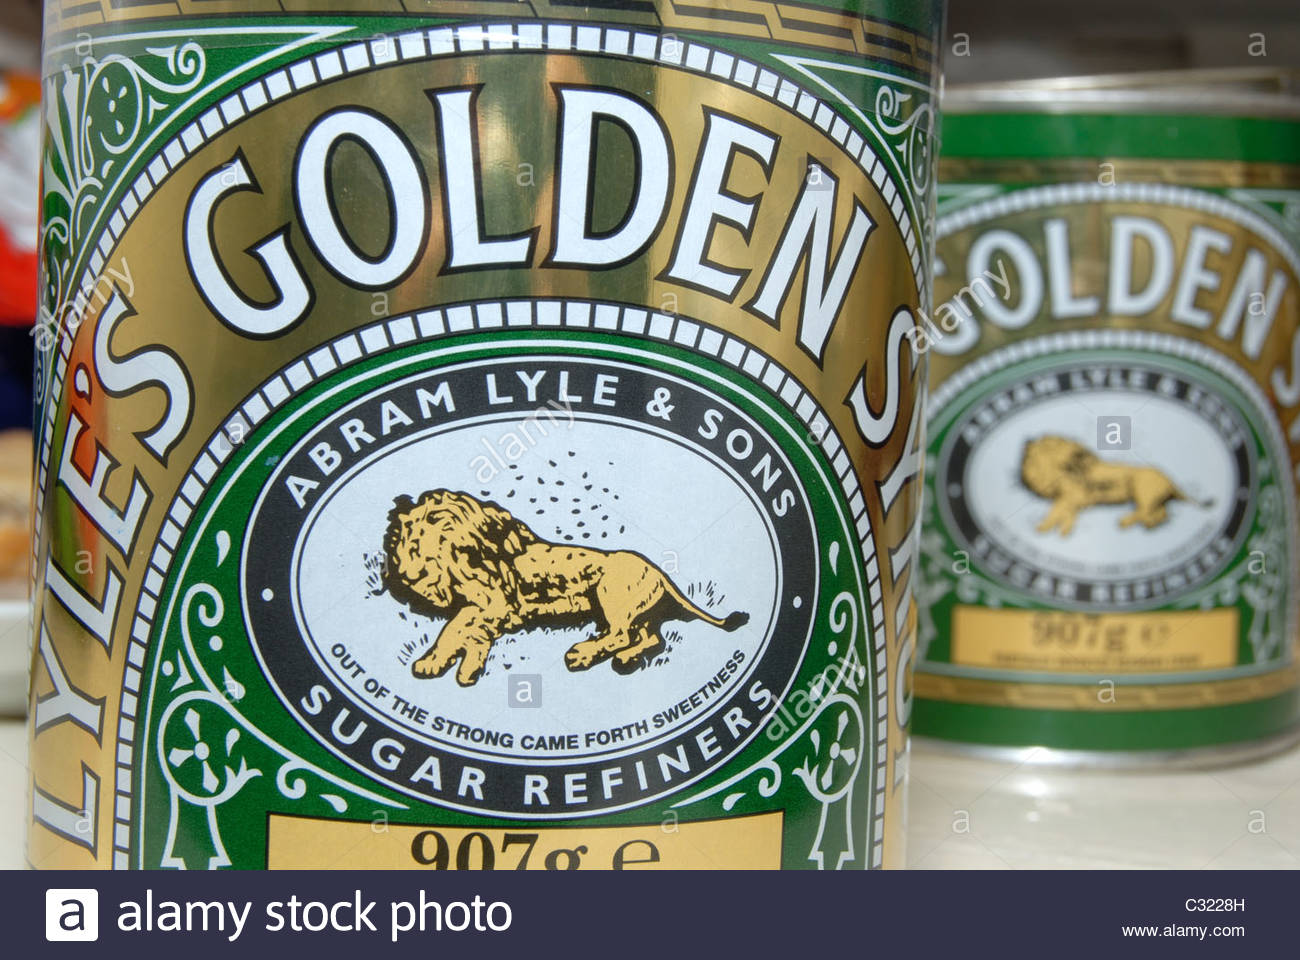 Tins of Lyle's Golden Syrup. - Stock Image